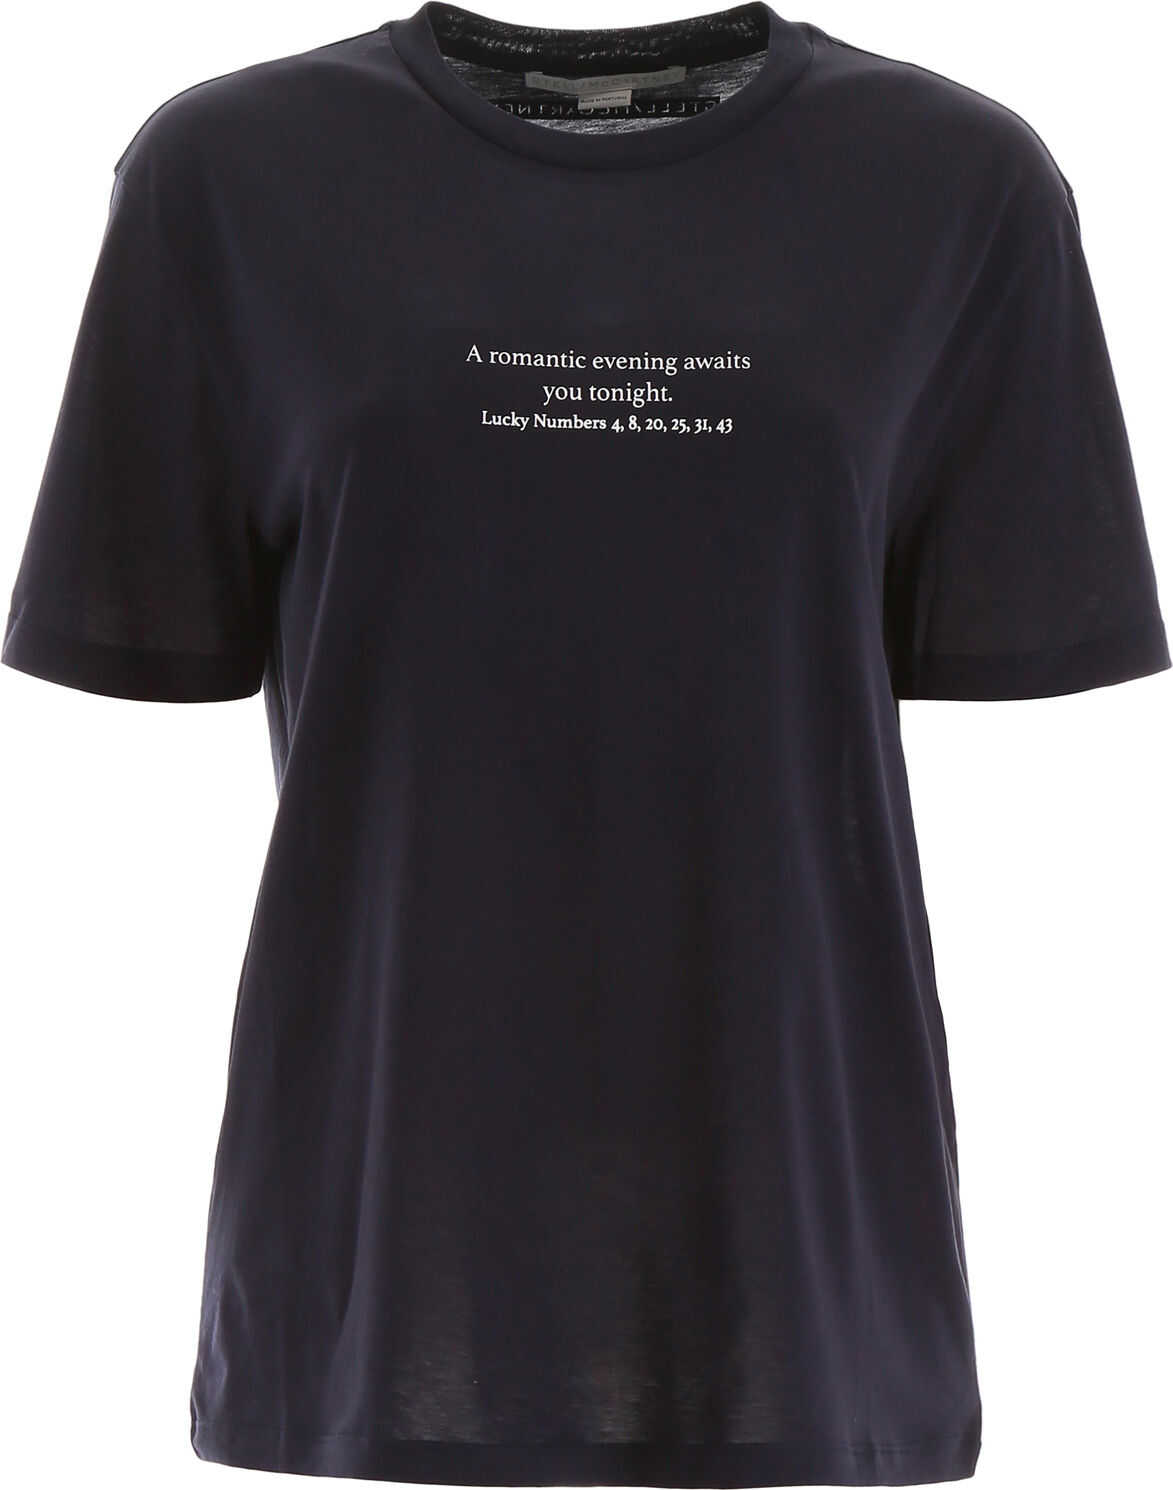 adidas by Stella McCartney Lucky Numbers T-Shirt INK